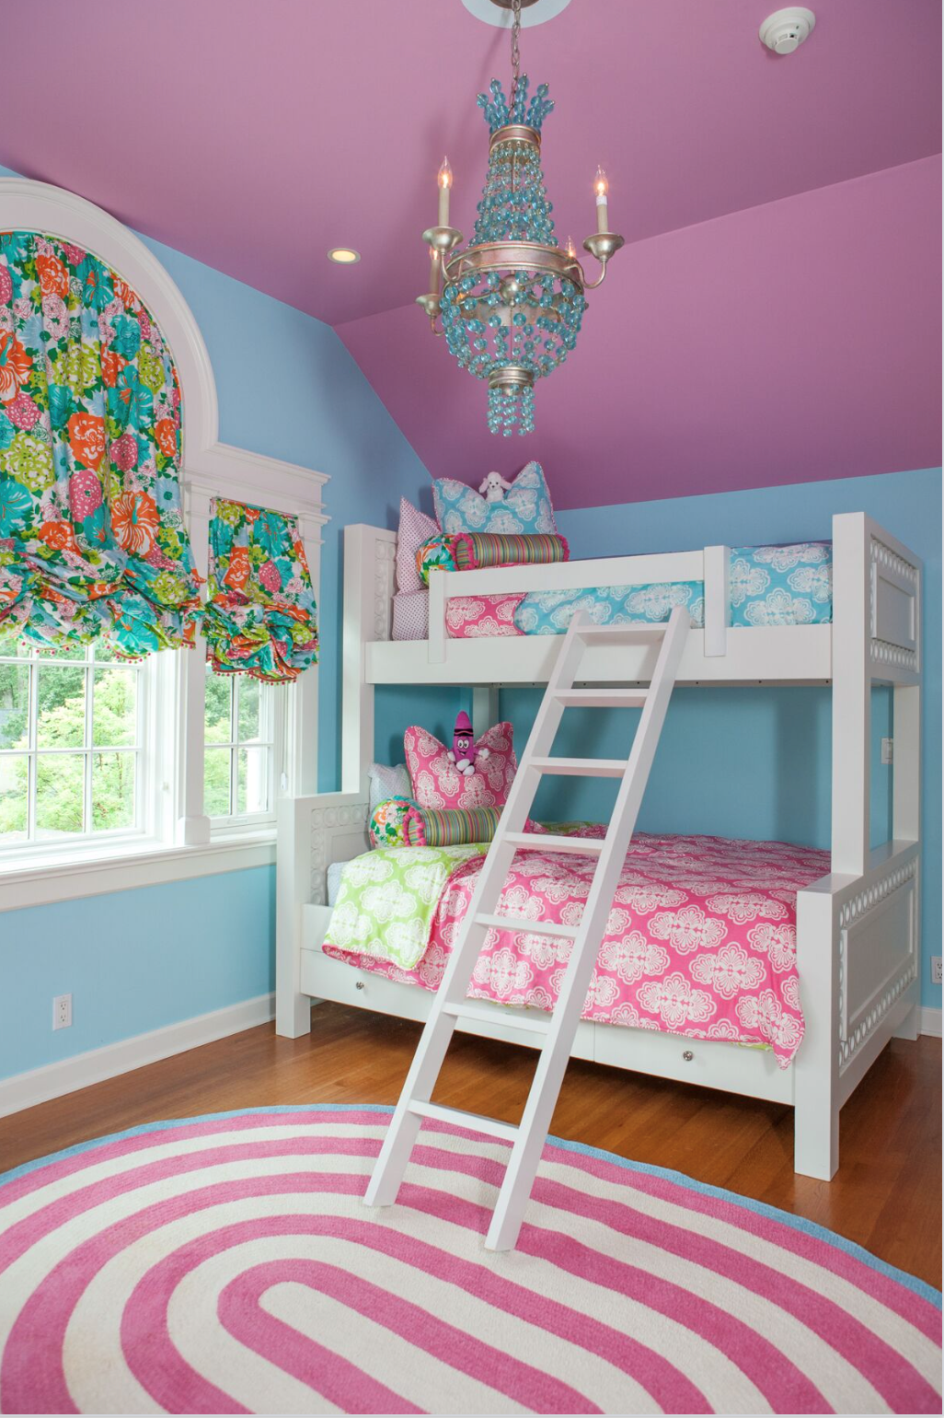 white bunkbeds in colorful child's bedroom